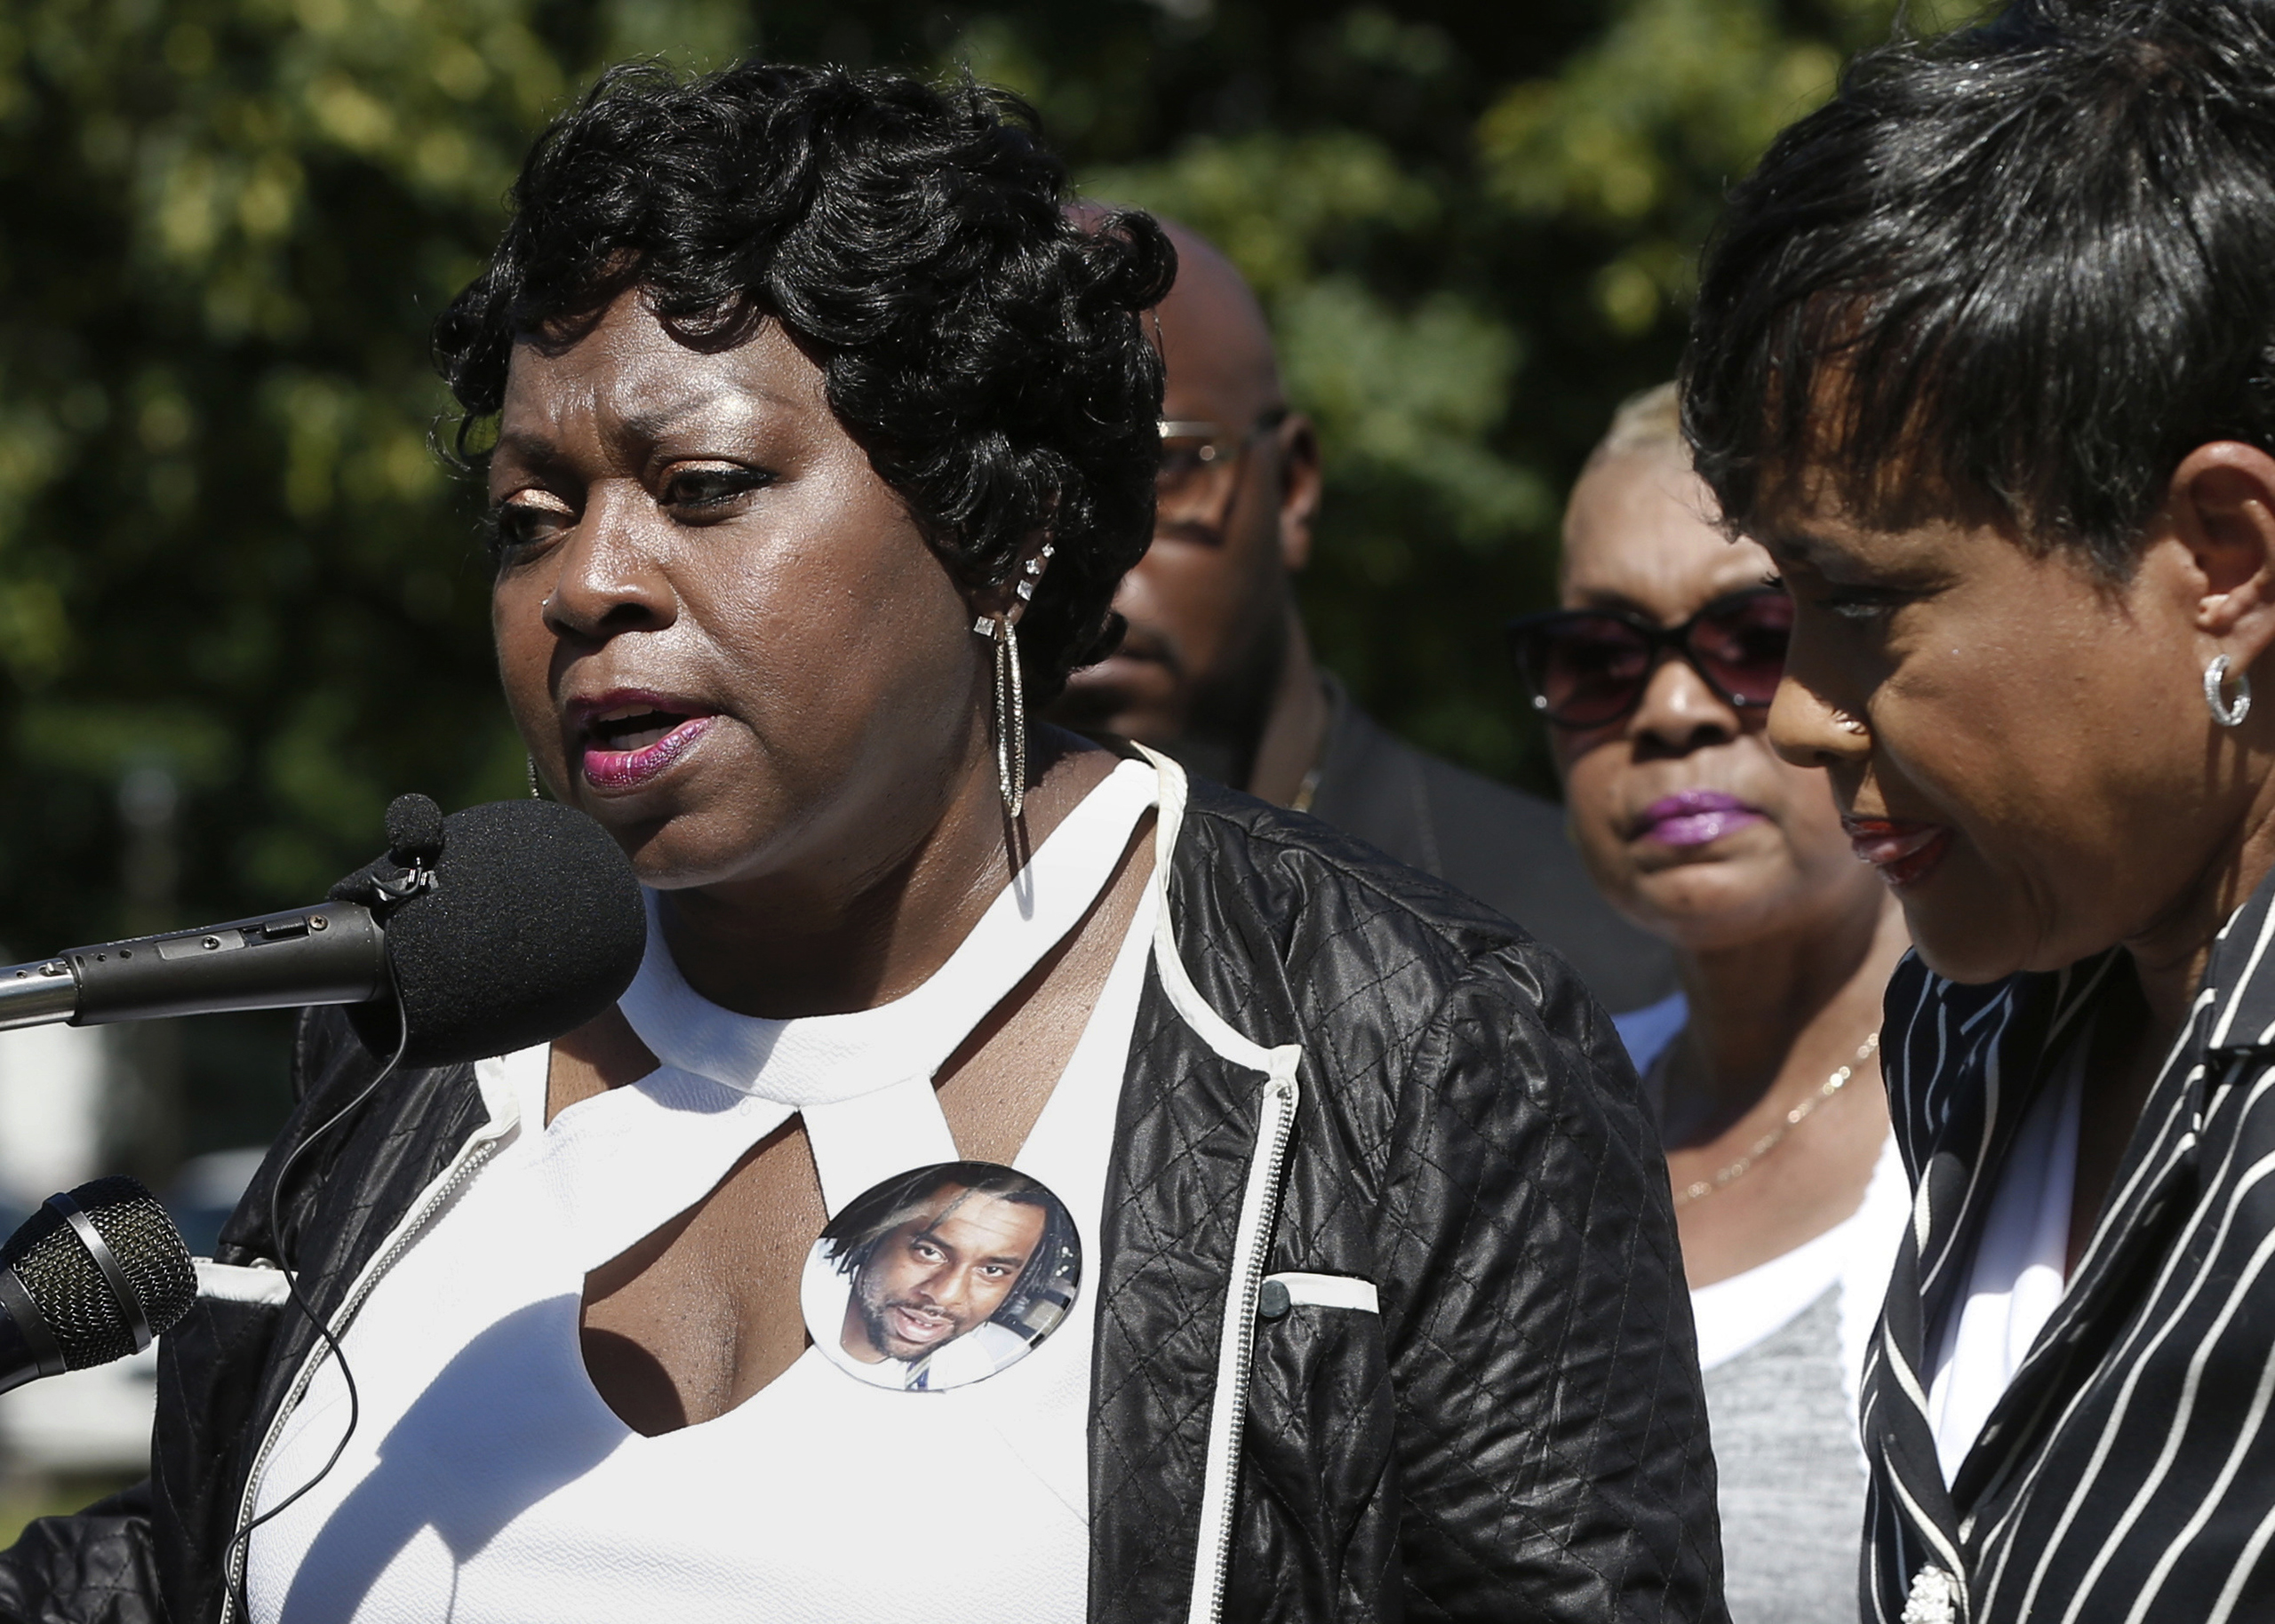 TV Judge Glenda Hatchett, right, listens as Valerie Castile, the mother of Philando Castile, takes questions during a news conference on the State Capitol grounds, in St. Paul, Minn, July 12, 2016.